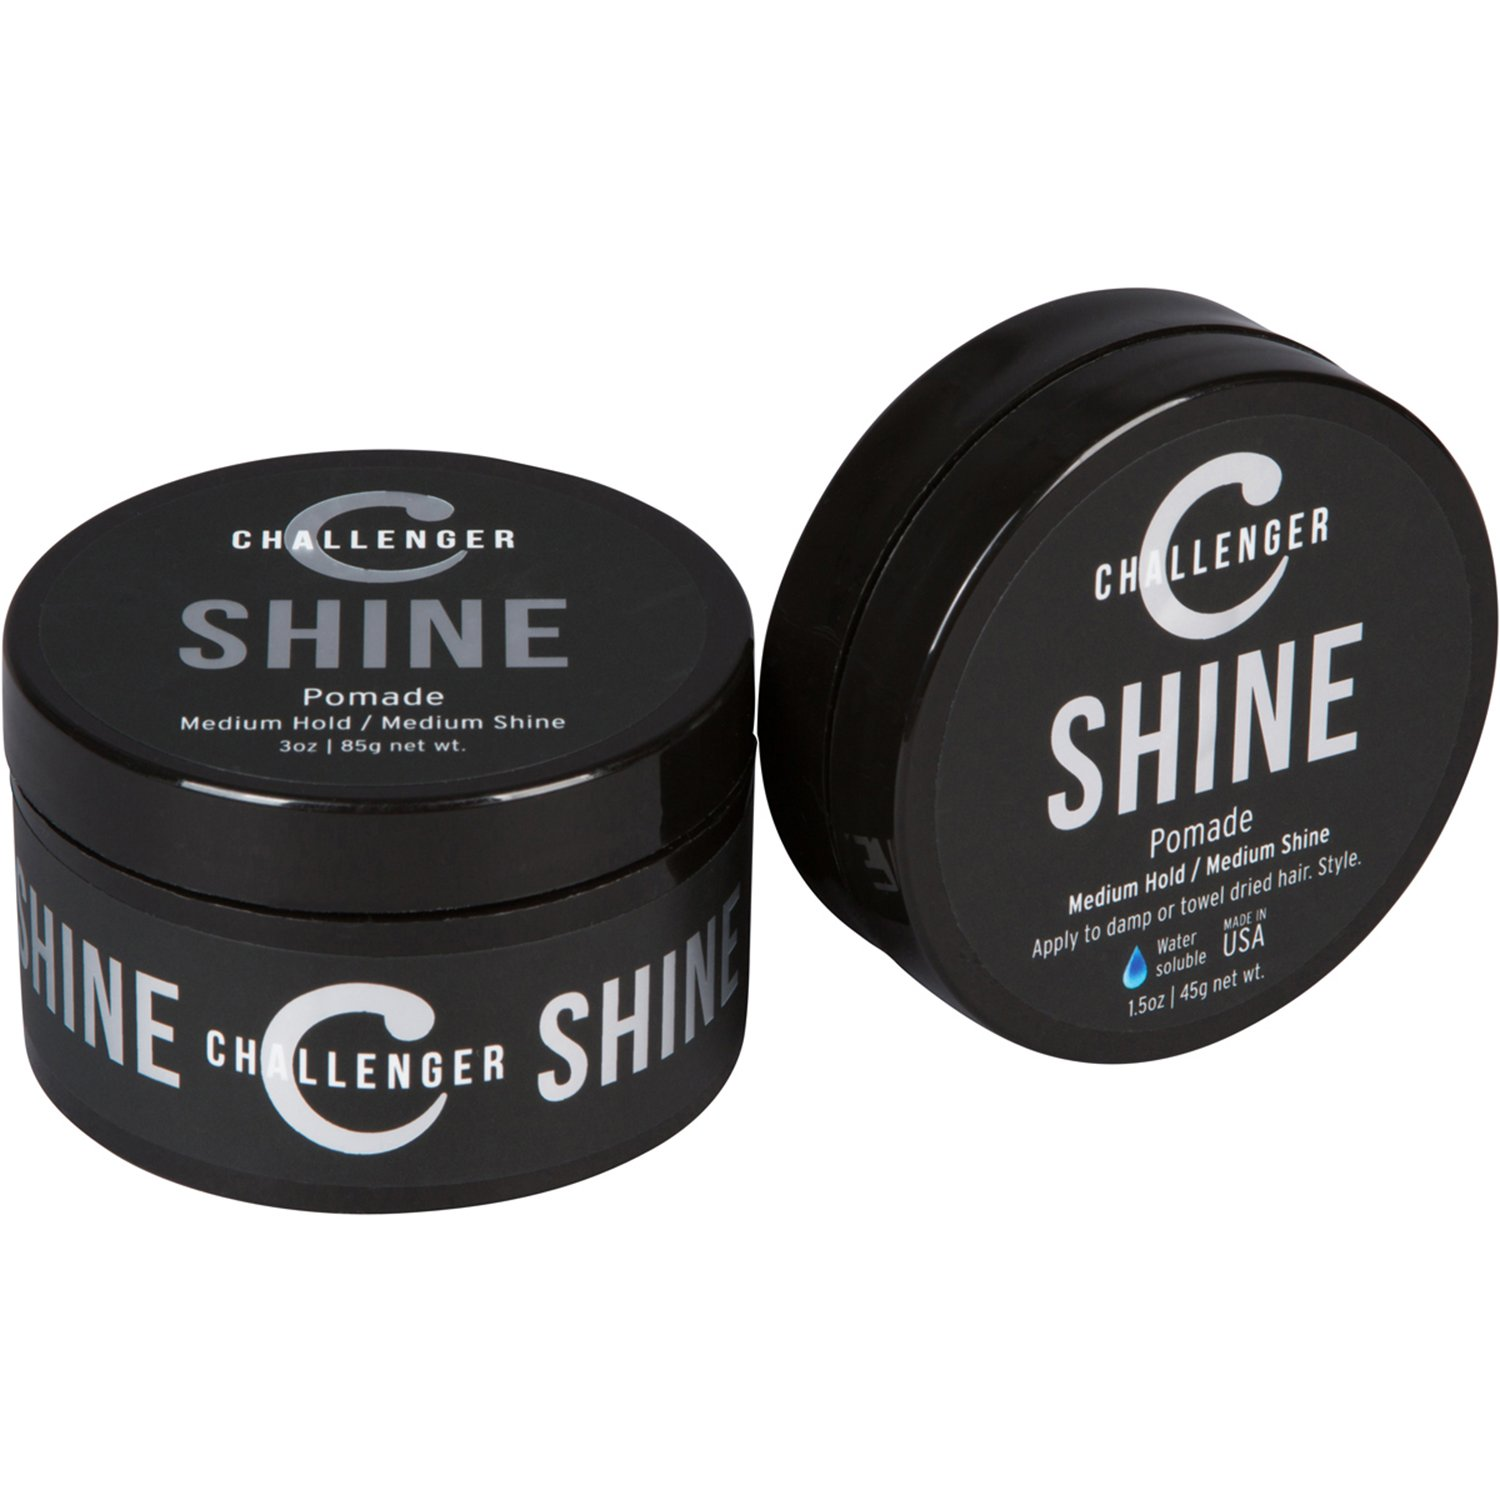 Combo Pack - 1.5OZ + 3OZ Shine Pomade - Medium Hold & Shine - Best Styling Pomade - Water Based, Clean & Subtle Scent, Travel Friendly. Hair Wax, Fiber, Clay, Paste, and Cream, All In One Challenger